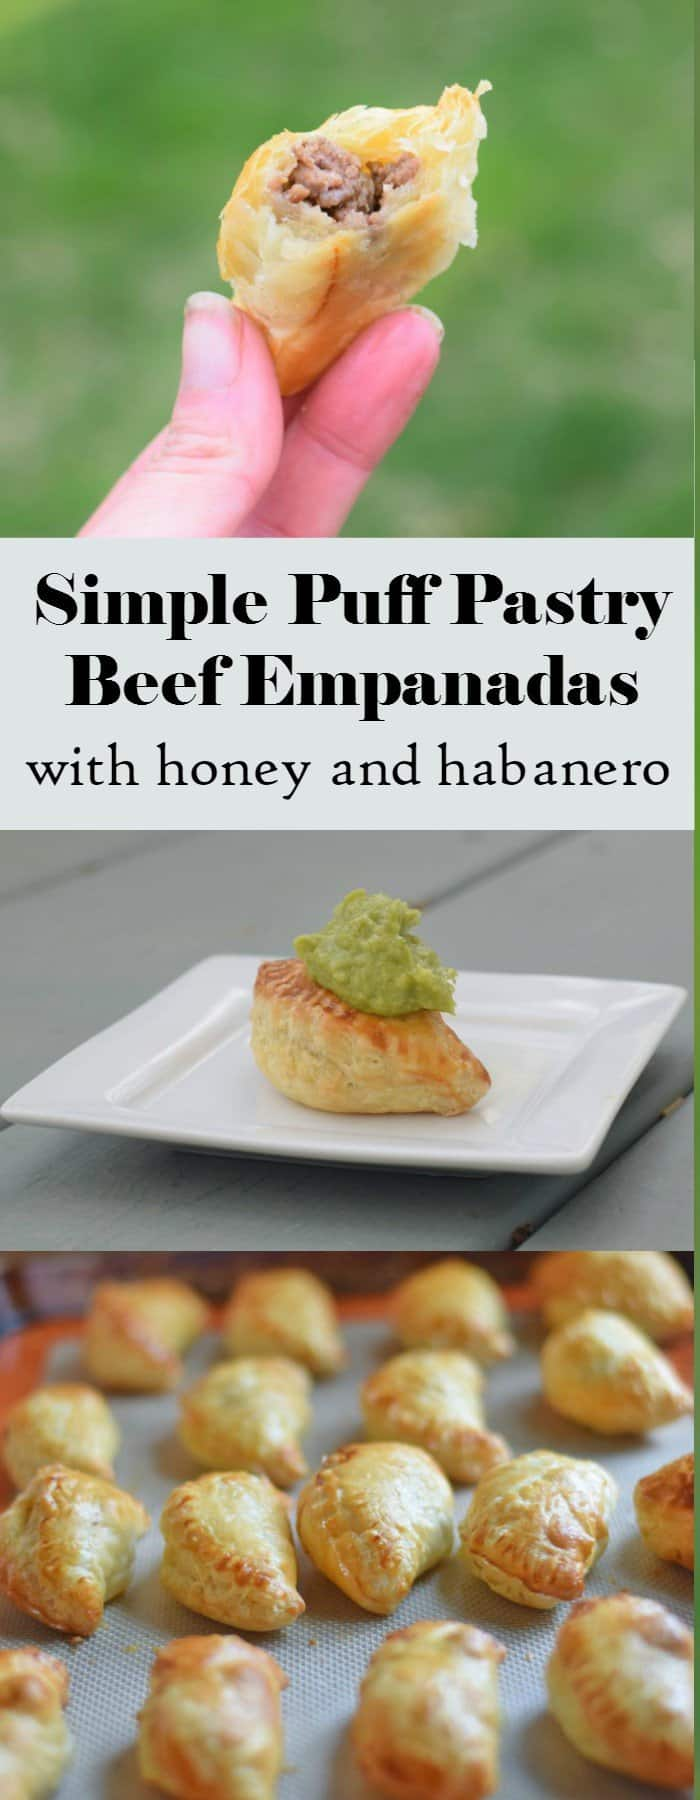 Delicious honey habanero homemade beef empanadas recipe using puff pastry. This easy appetizer is portable and has fantastic flavor for your summer picnics and more.